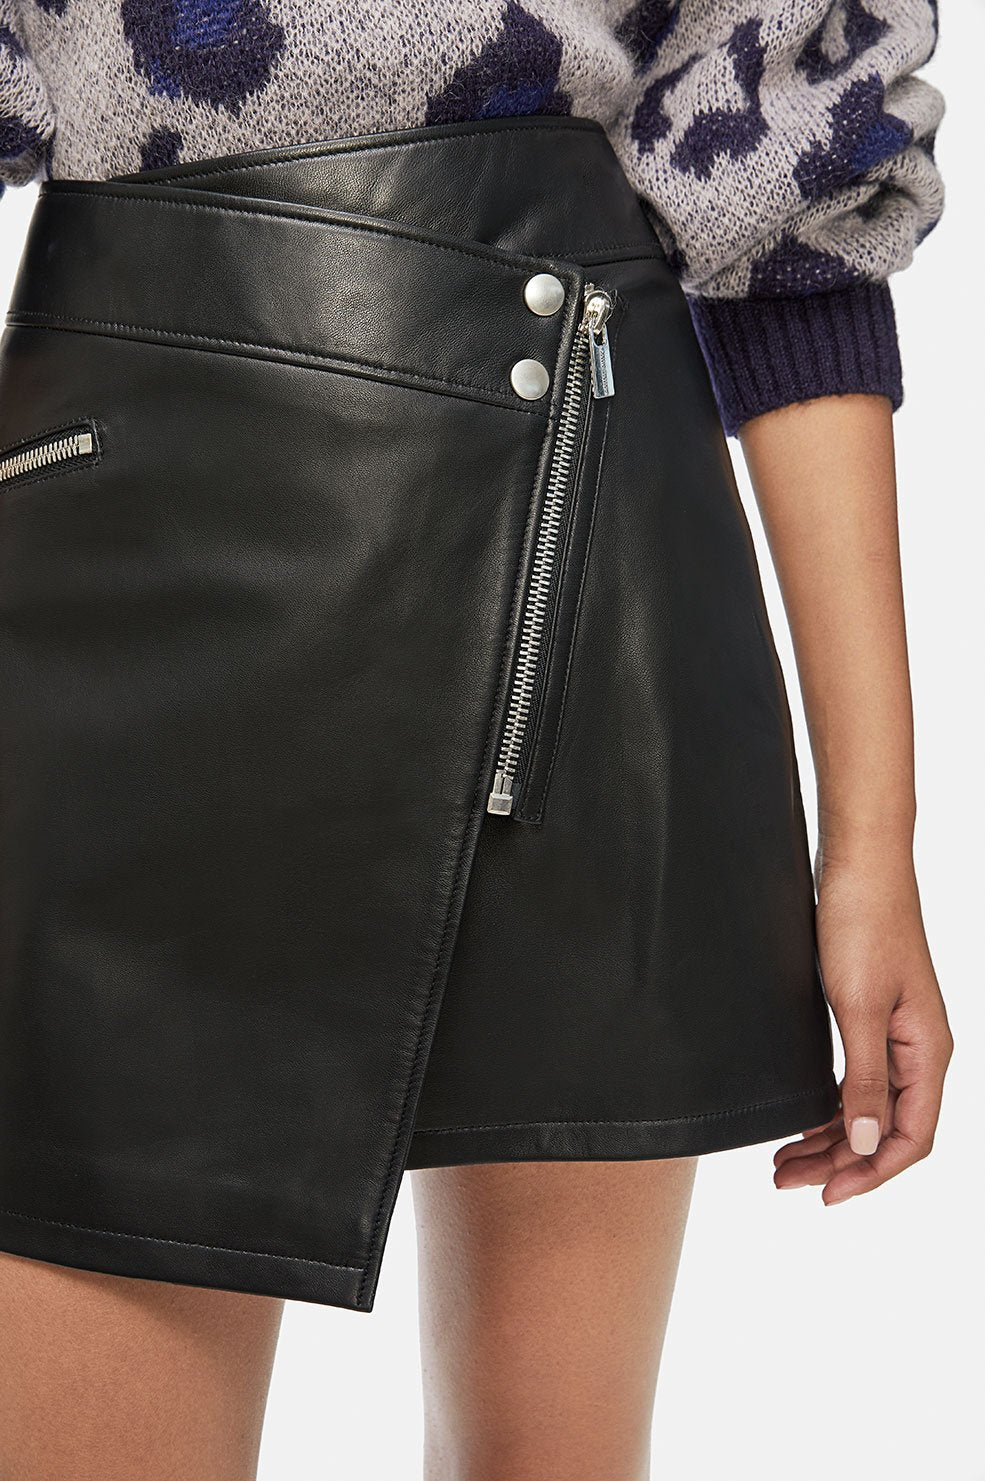 ANINE BING Sarah Leather Skirt - Black